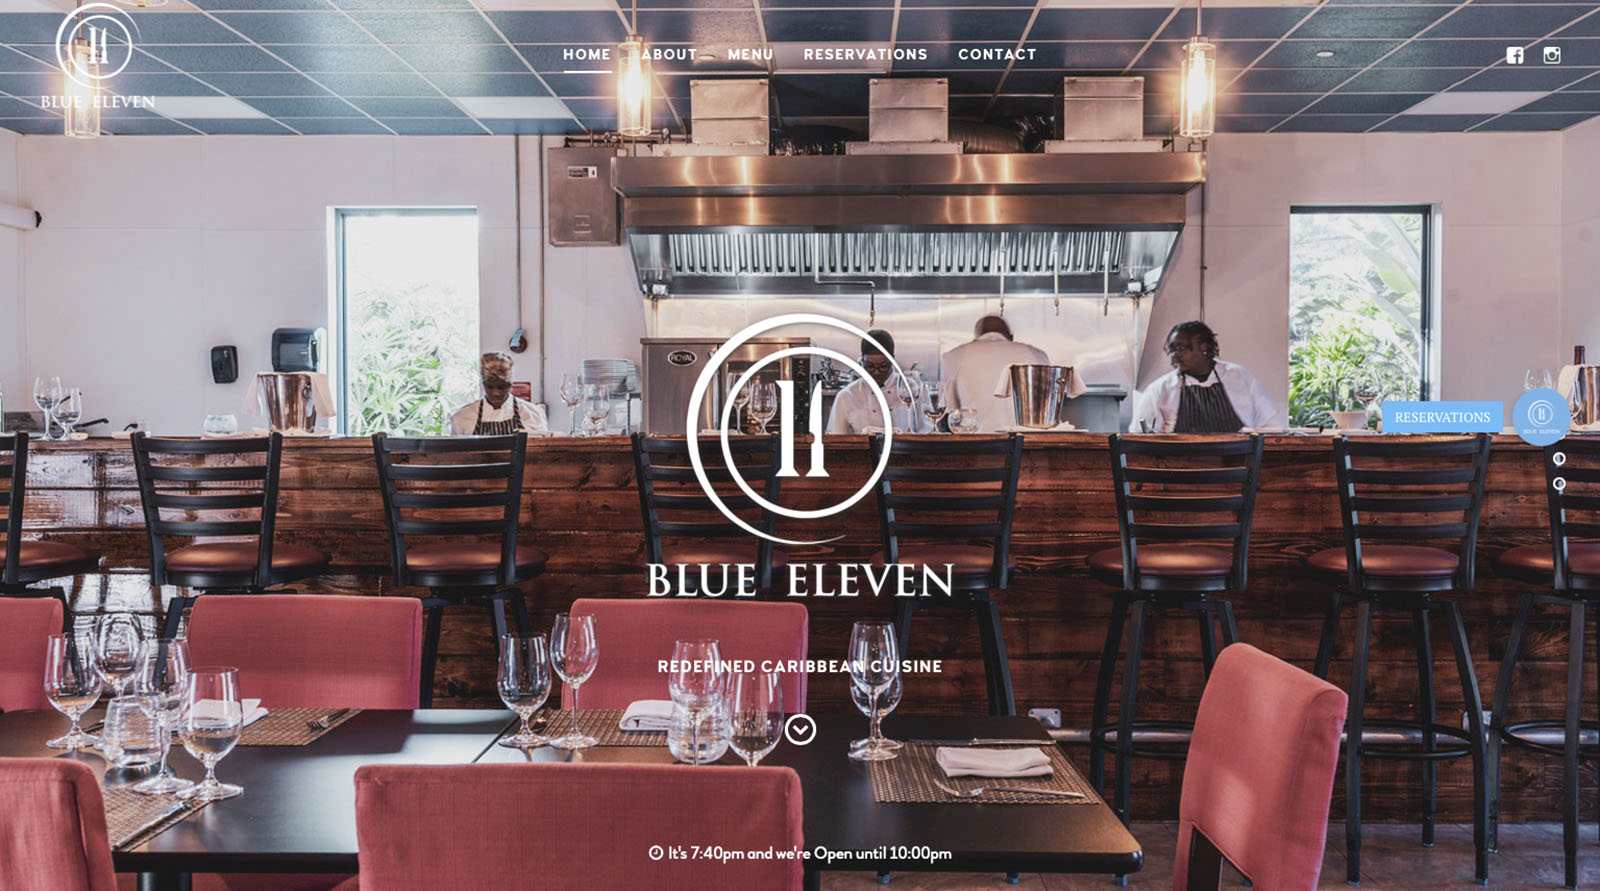 Blue 11 Restaurant Website